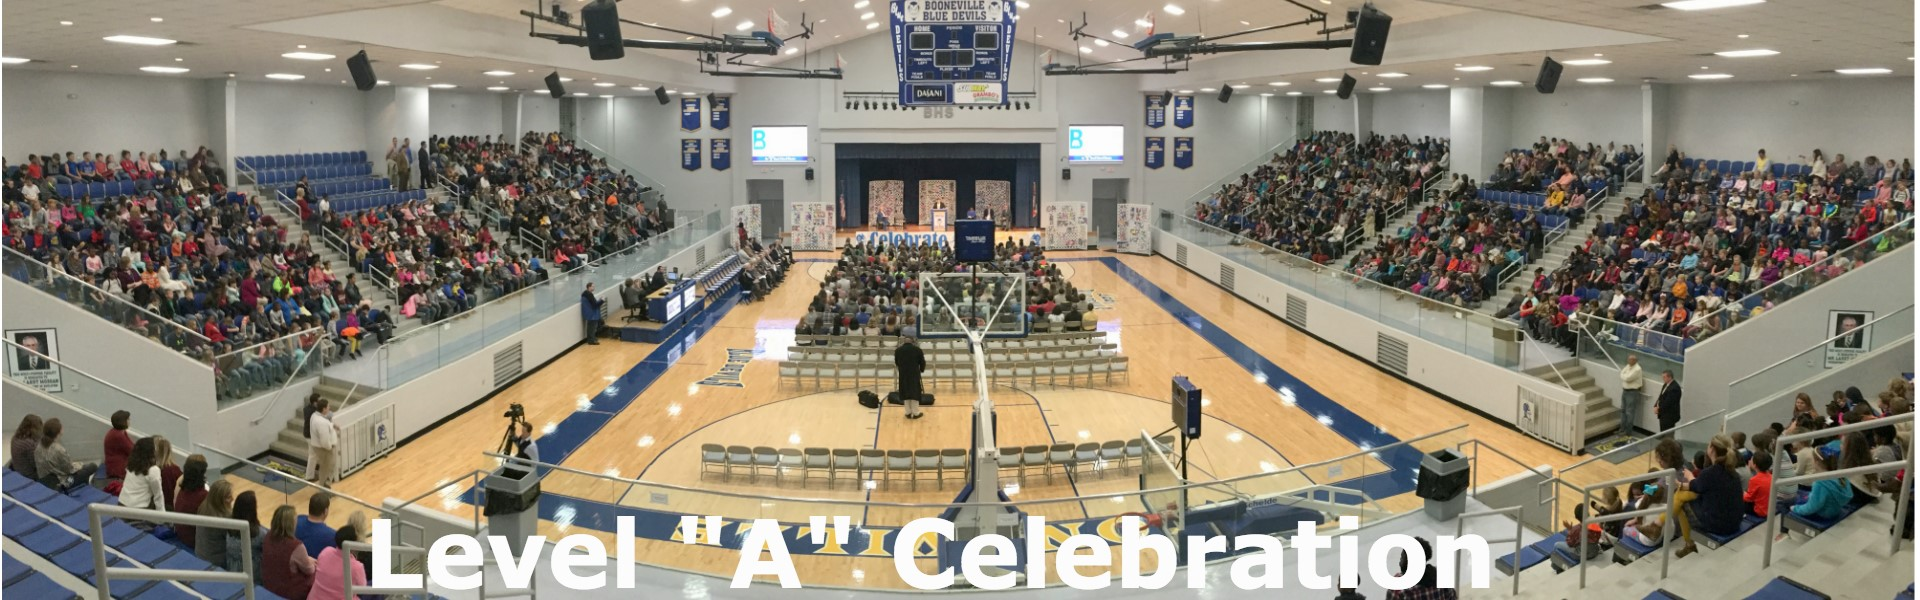 "Level ""A"" School District Celebration"